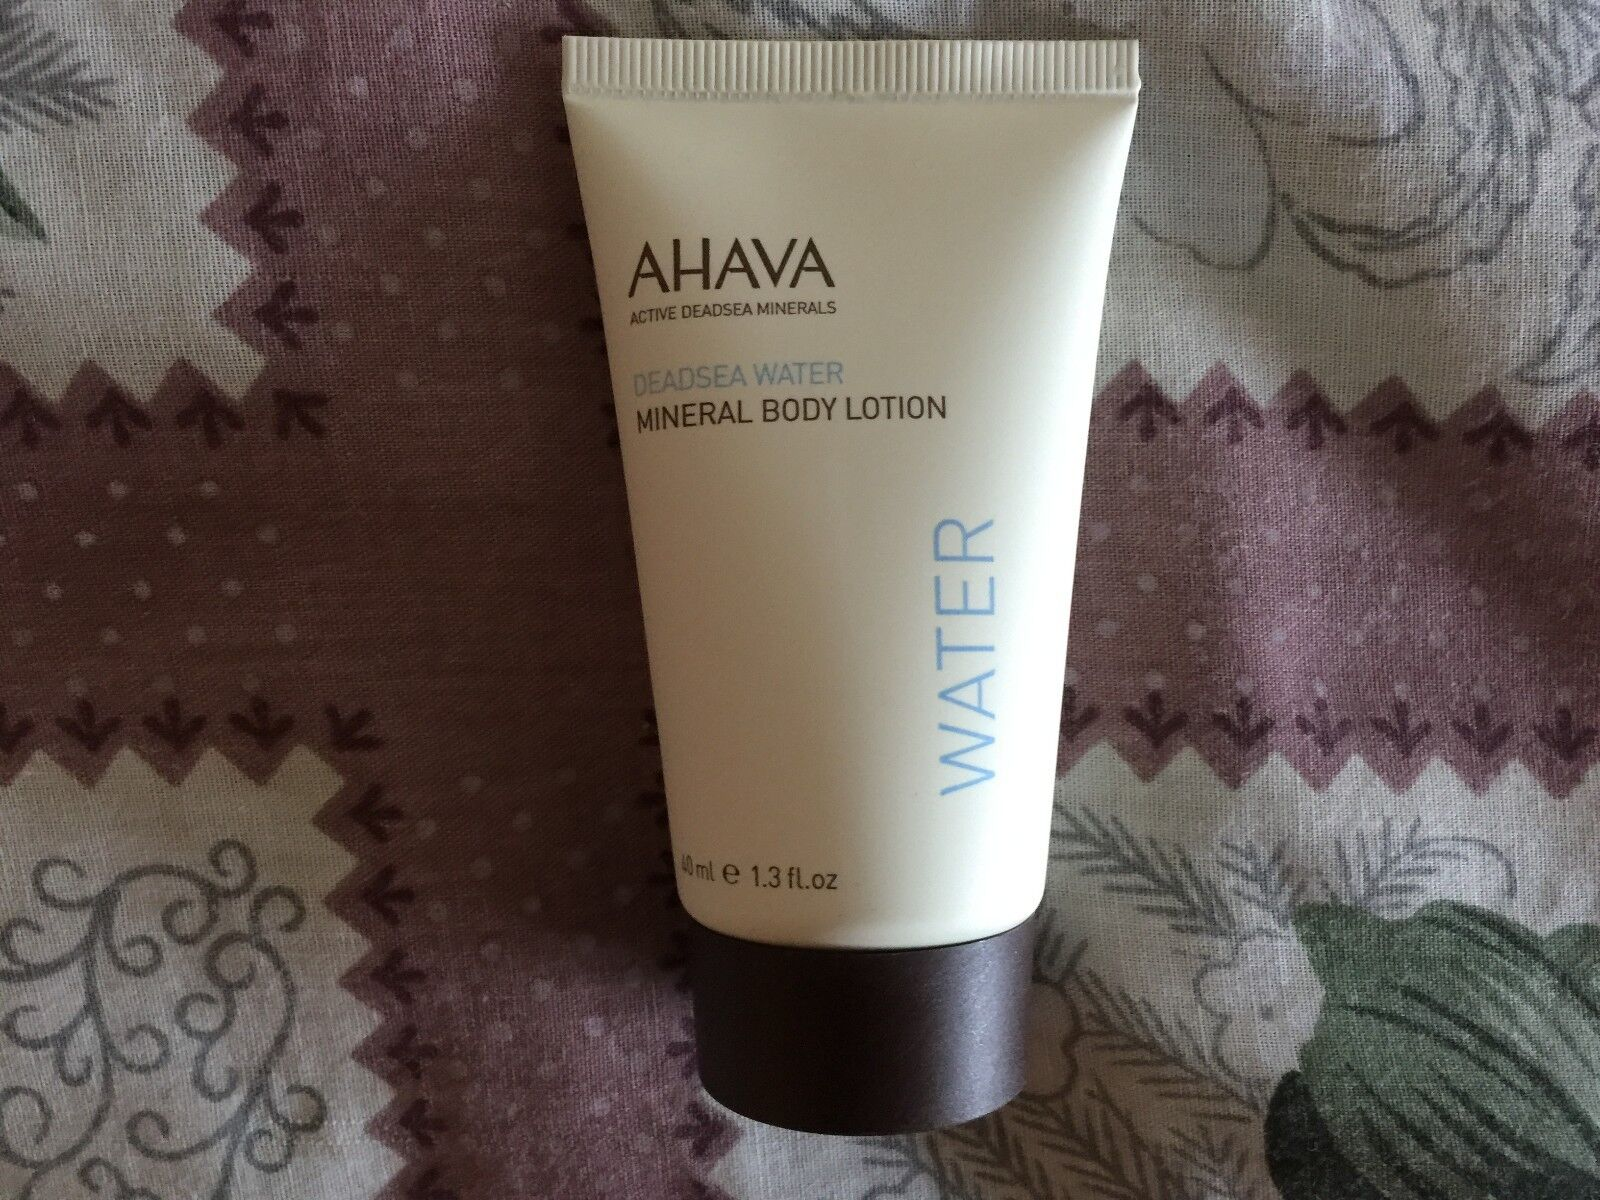 deadsea water mineral body lotion w witch